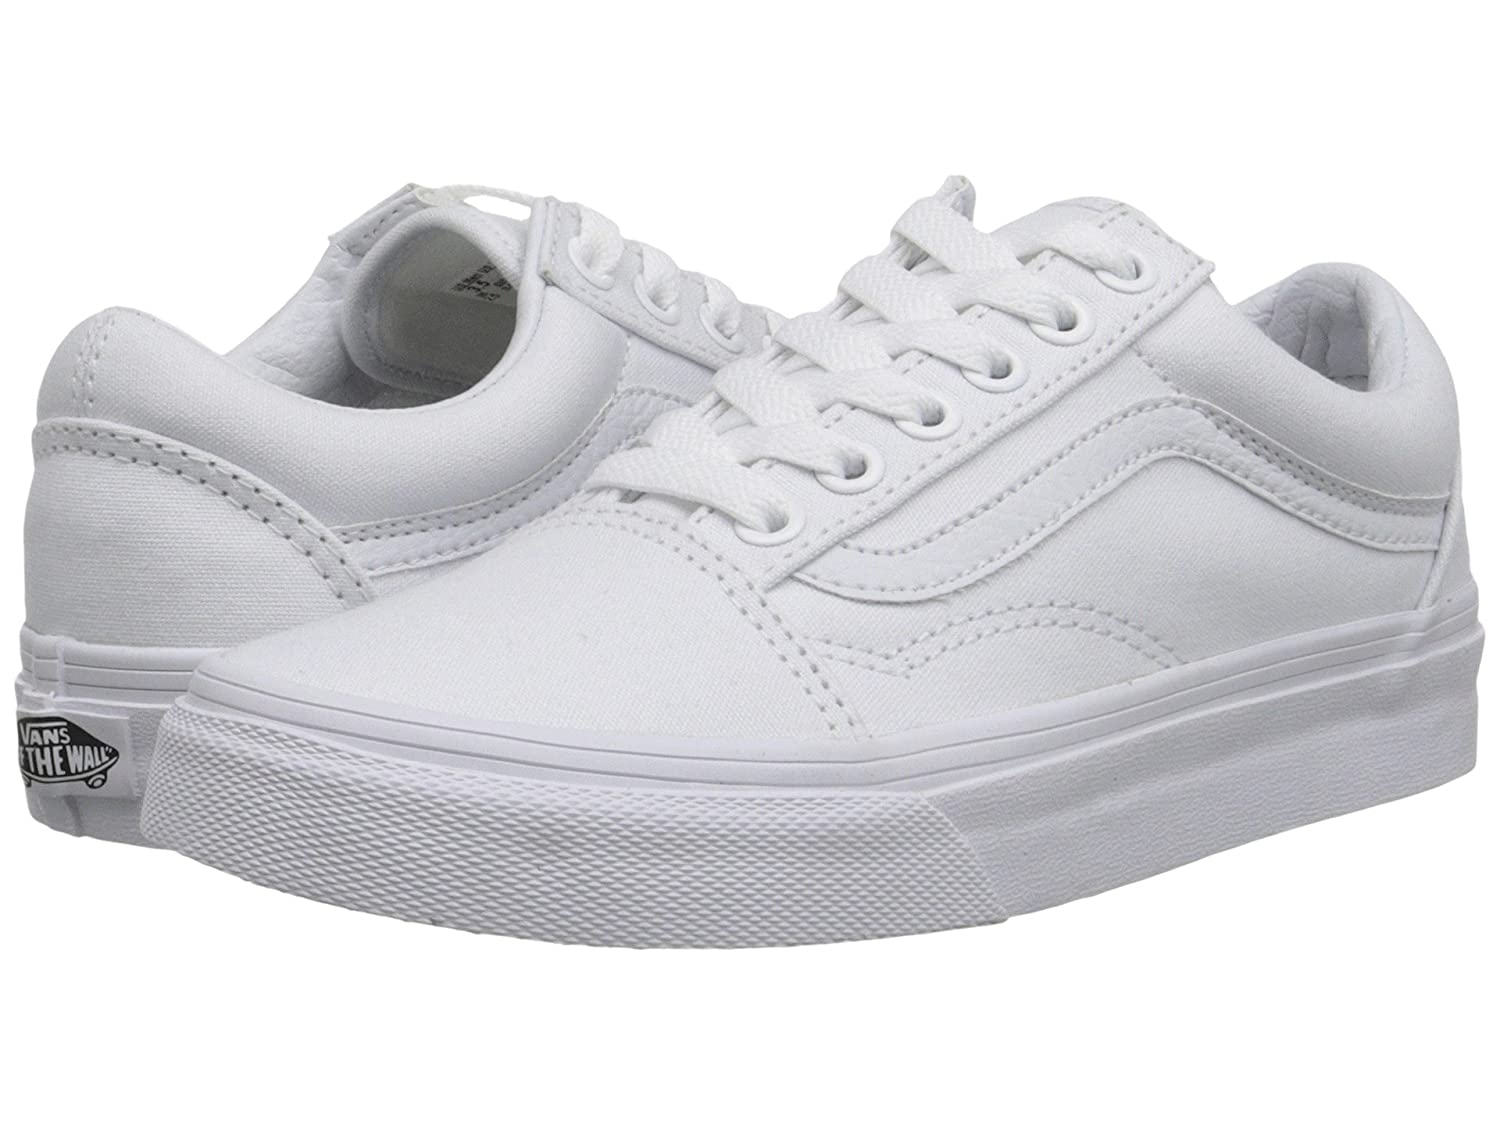 [バンズ] VANS OLD SKOOL B0795B7WC3 8.5 B(M) US Women / 7 D(M) US Men|ホワイト(True White) ホワイト(True White) 8.5 B(M) US Women / 7 D(M) US Men